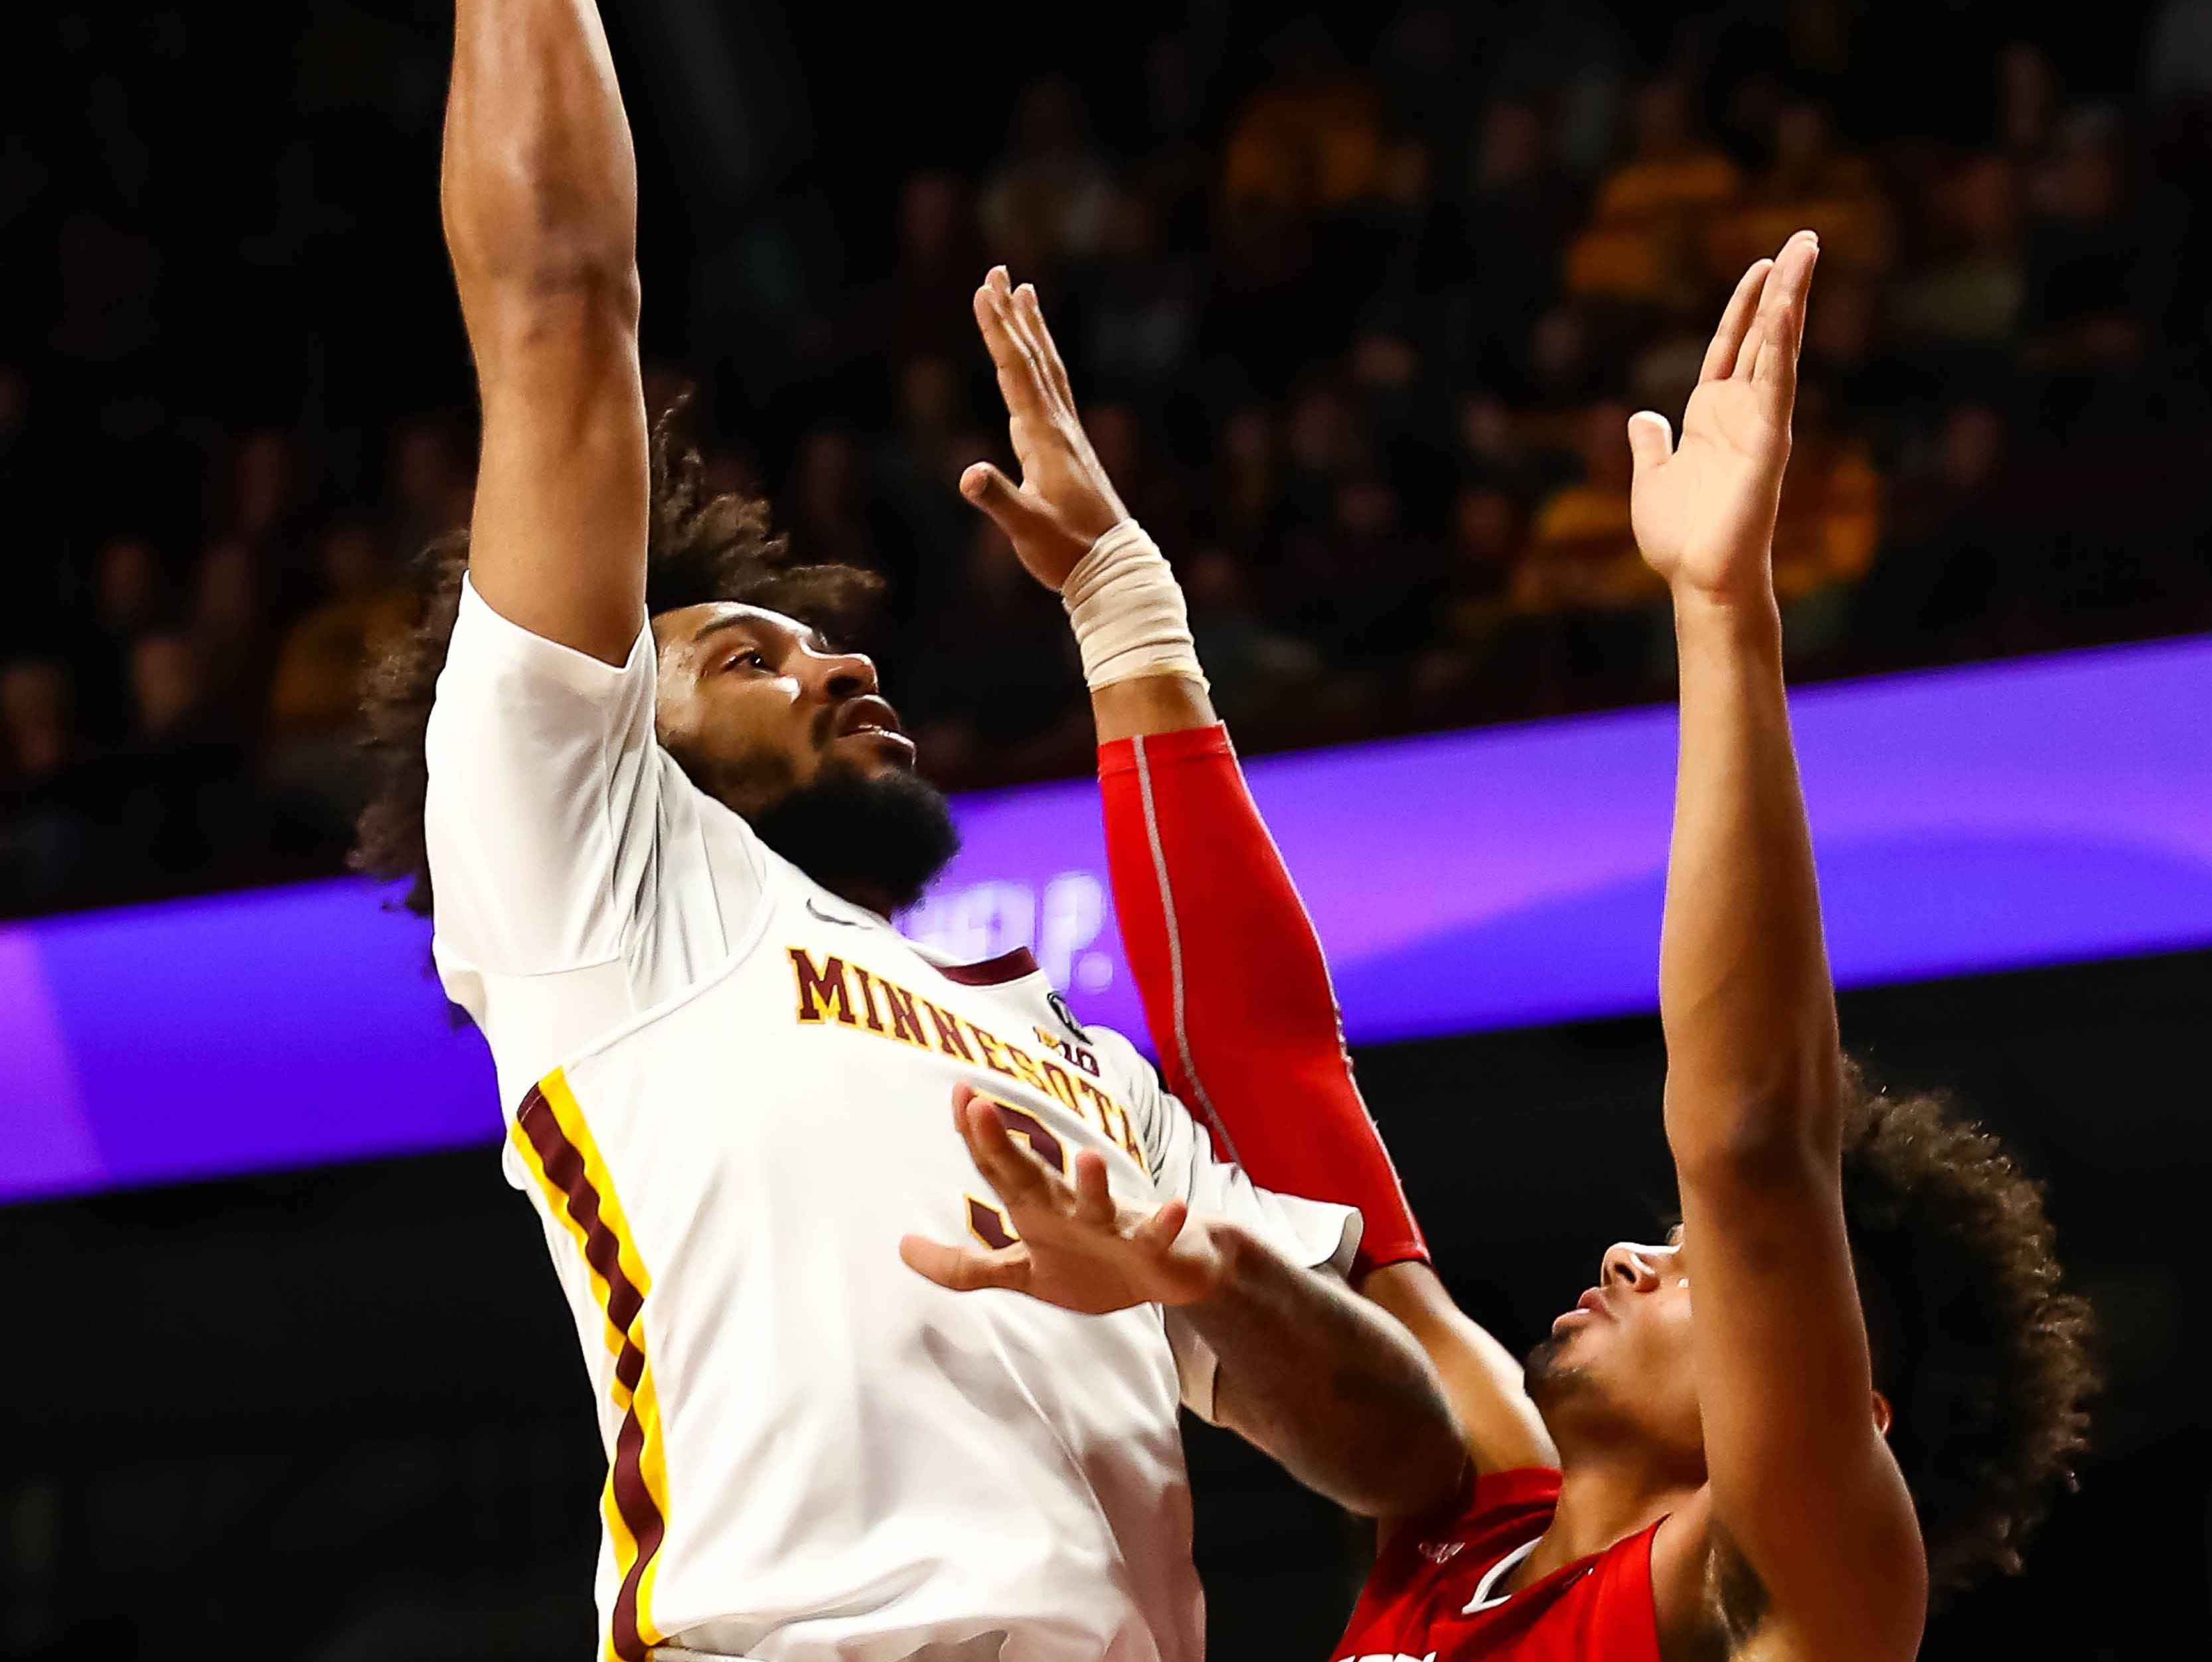 Minnesota Golden Gophers forward Jordan Murphy (3) goes up for a shot while Indiana Hoosiers forward Justin Smith (3) defends in the first half at Williams Arena.